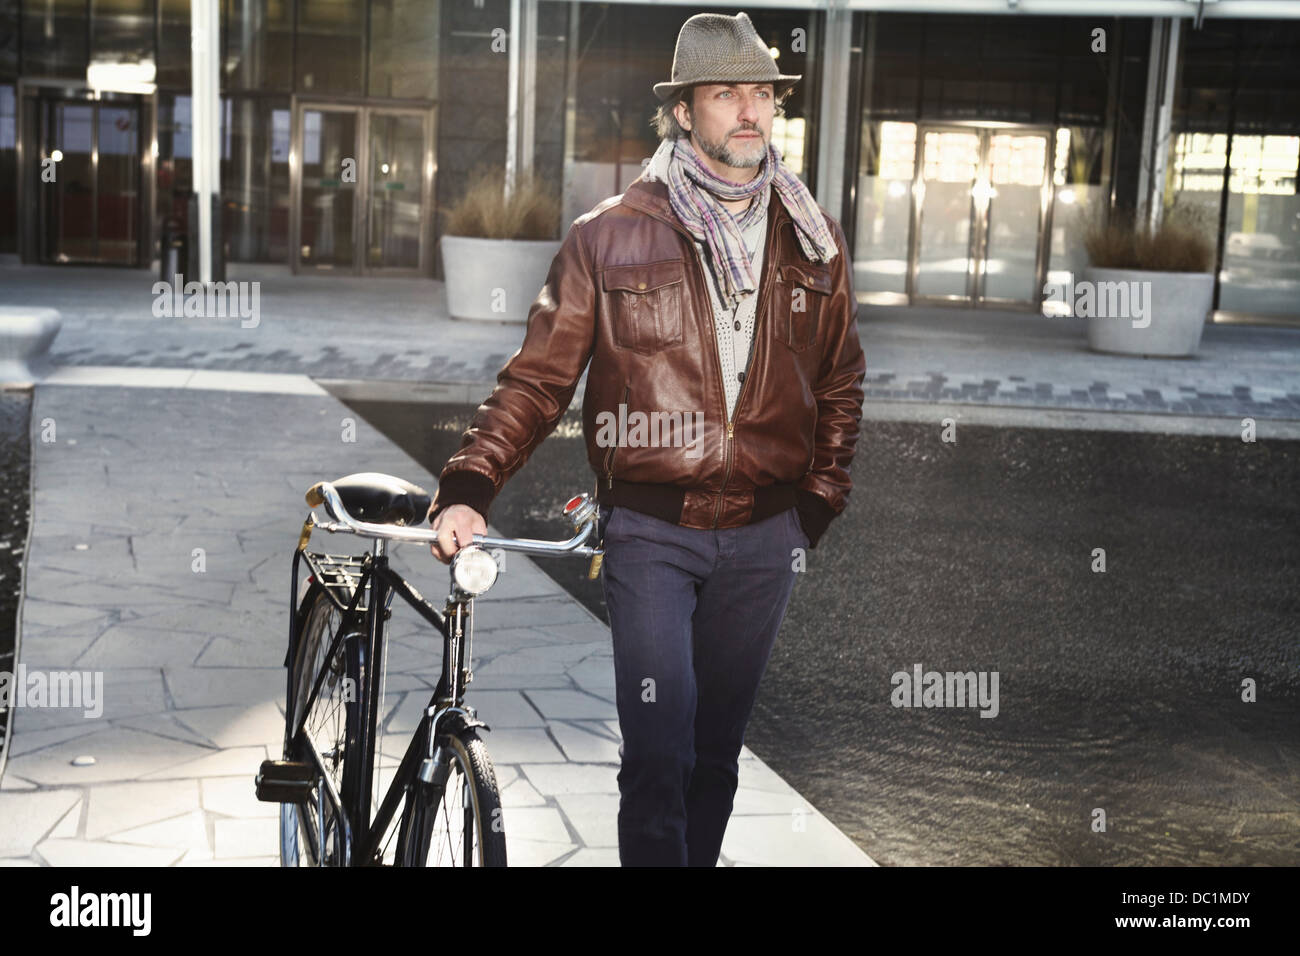 Mid adult man walking with bicycle in city Photo Stock